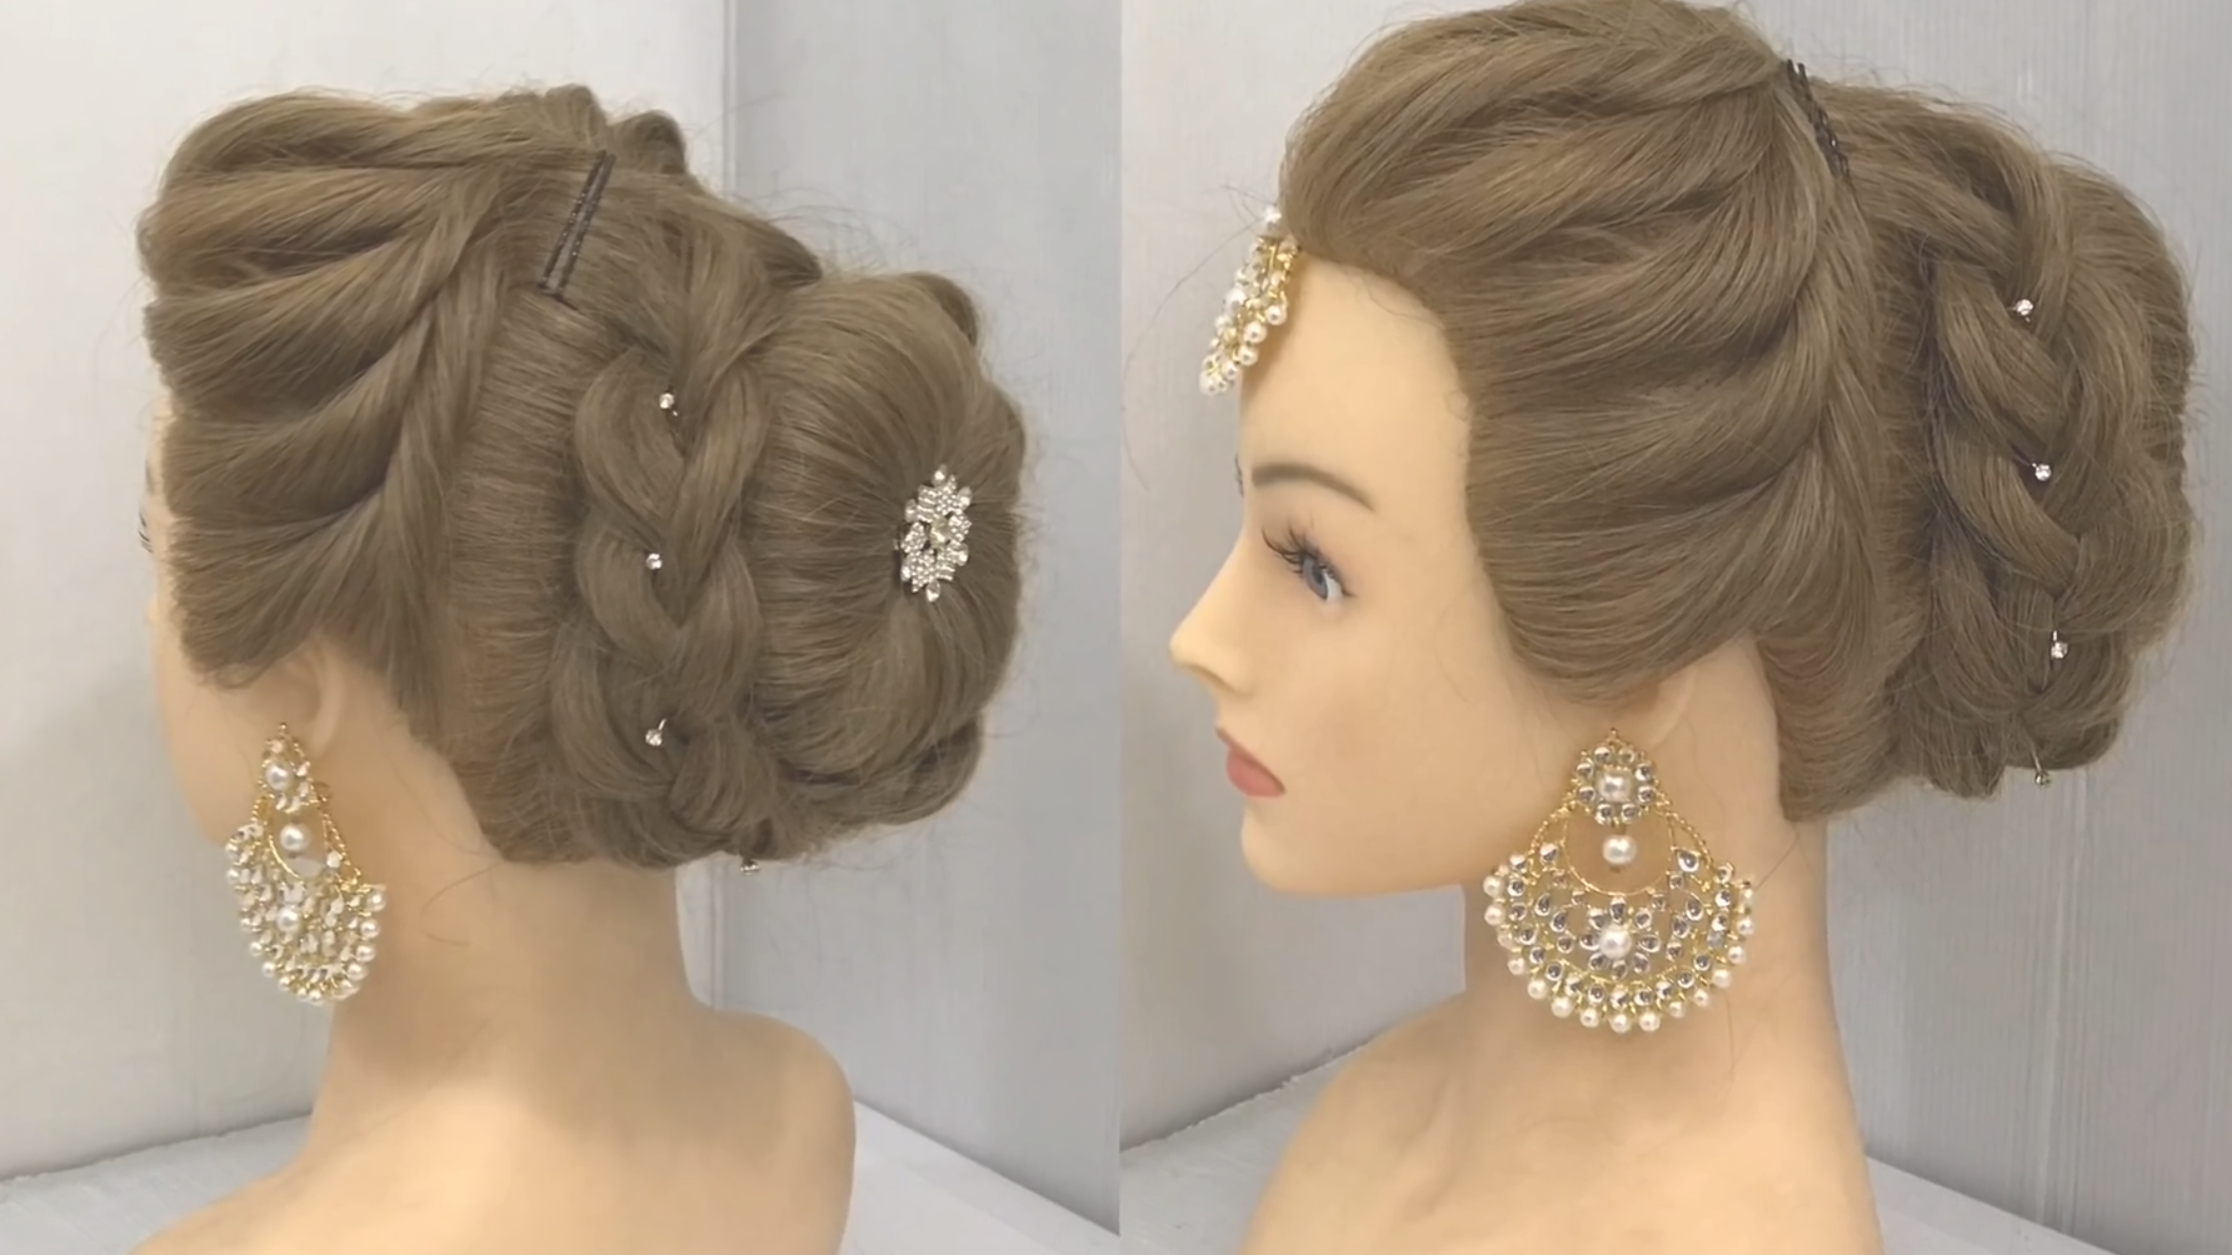 Most Beautiful Hairstyle For Wedding Or Party Easy Hairstyles Bun Hairstyle With Trick Hi Girls Wedding Hairstyles Videos Bridal Hair Buns Bun Hairstyles